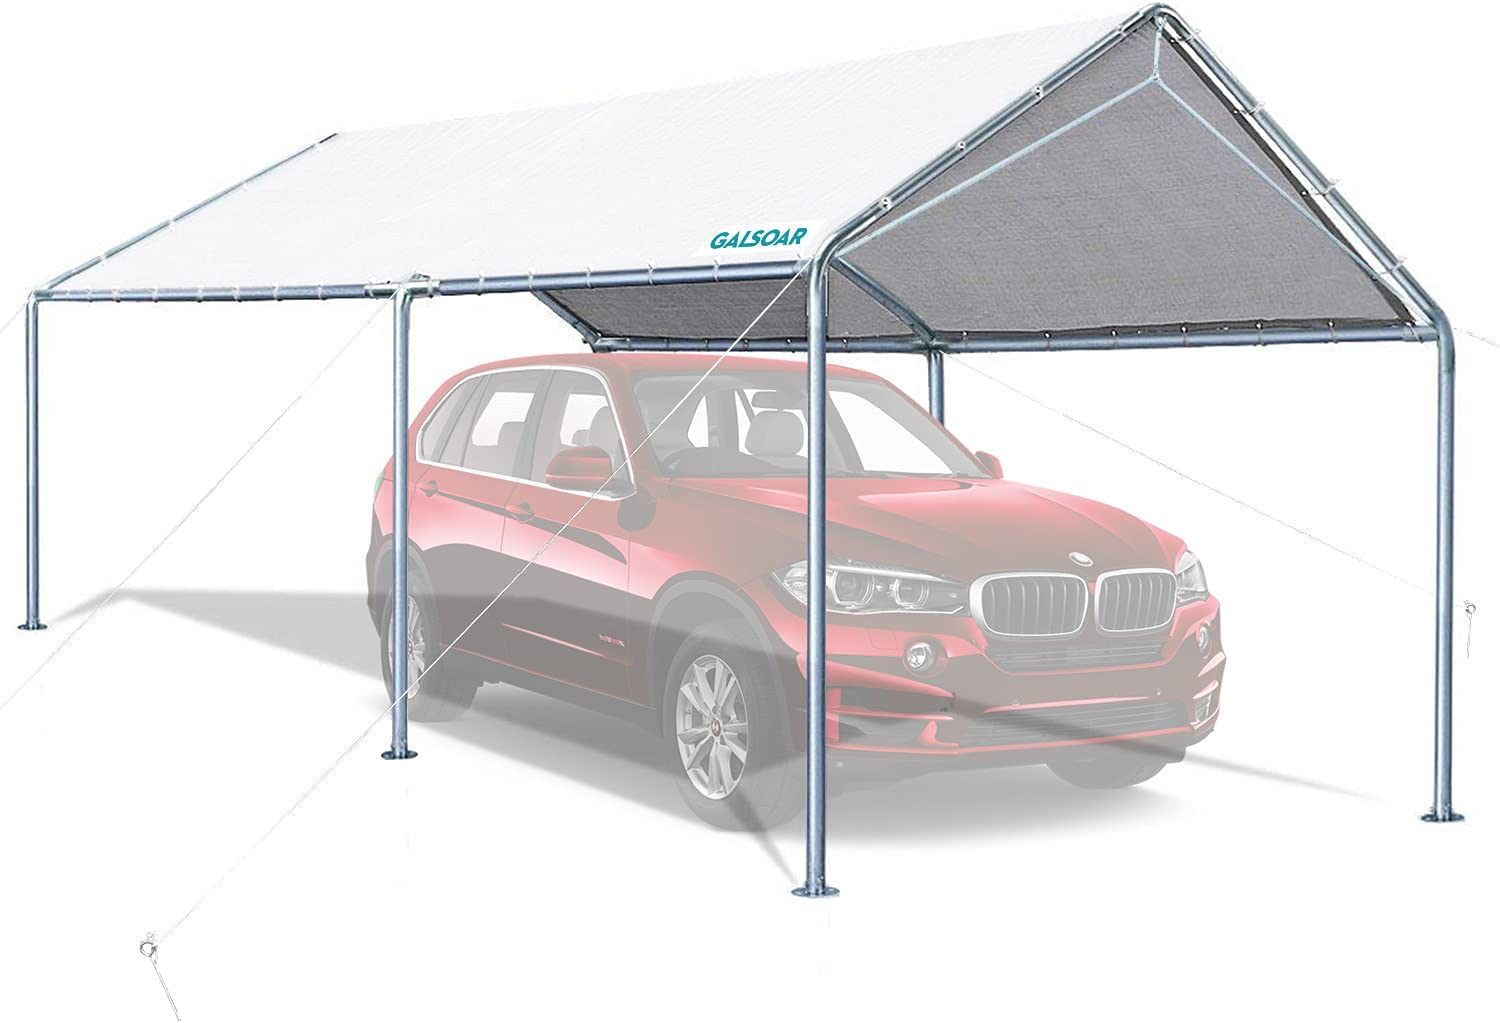 Carport, GALSOAR 10 x 20 ft Heavy Duty Car Canopy with 3 Reinforced Steel Cables for Snowy, Rainy Sunny Days, Rust Resistant Galvanized Steel Framework Car Tent, White